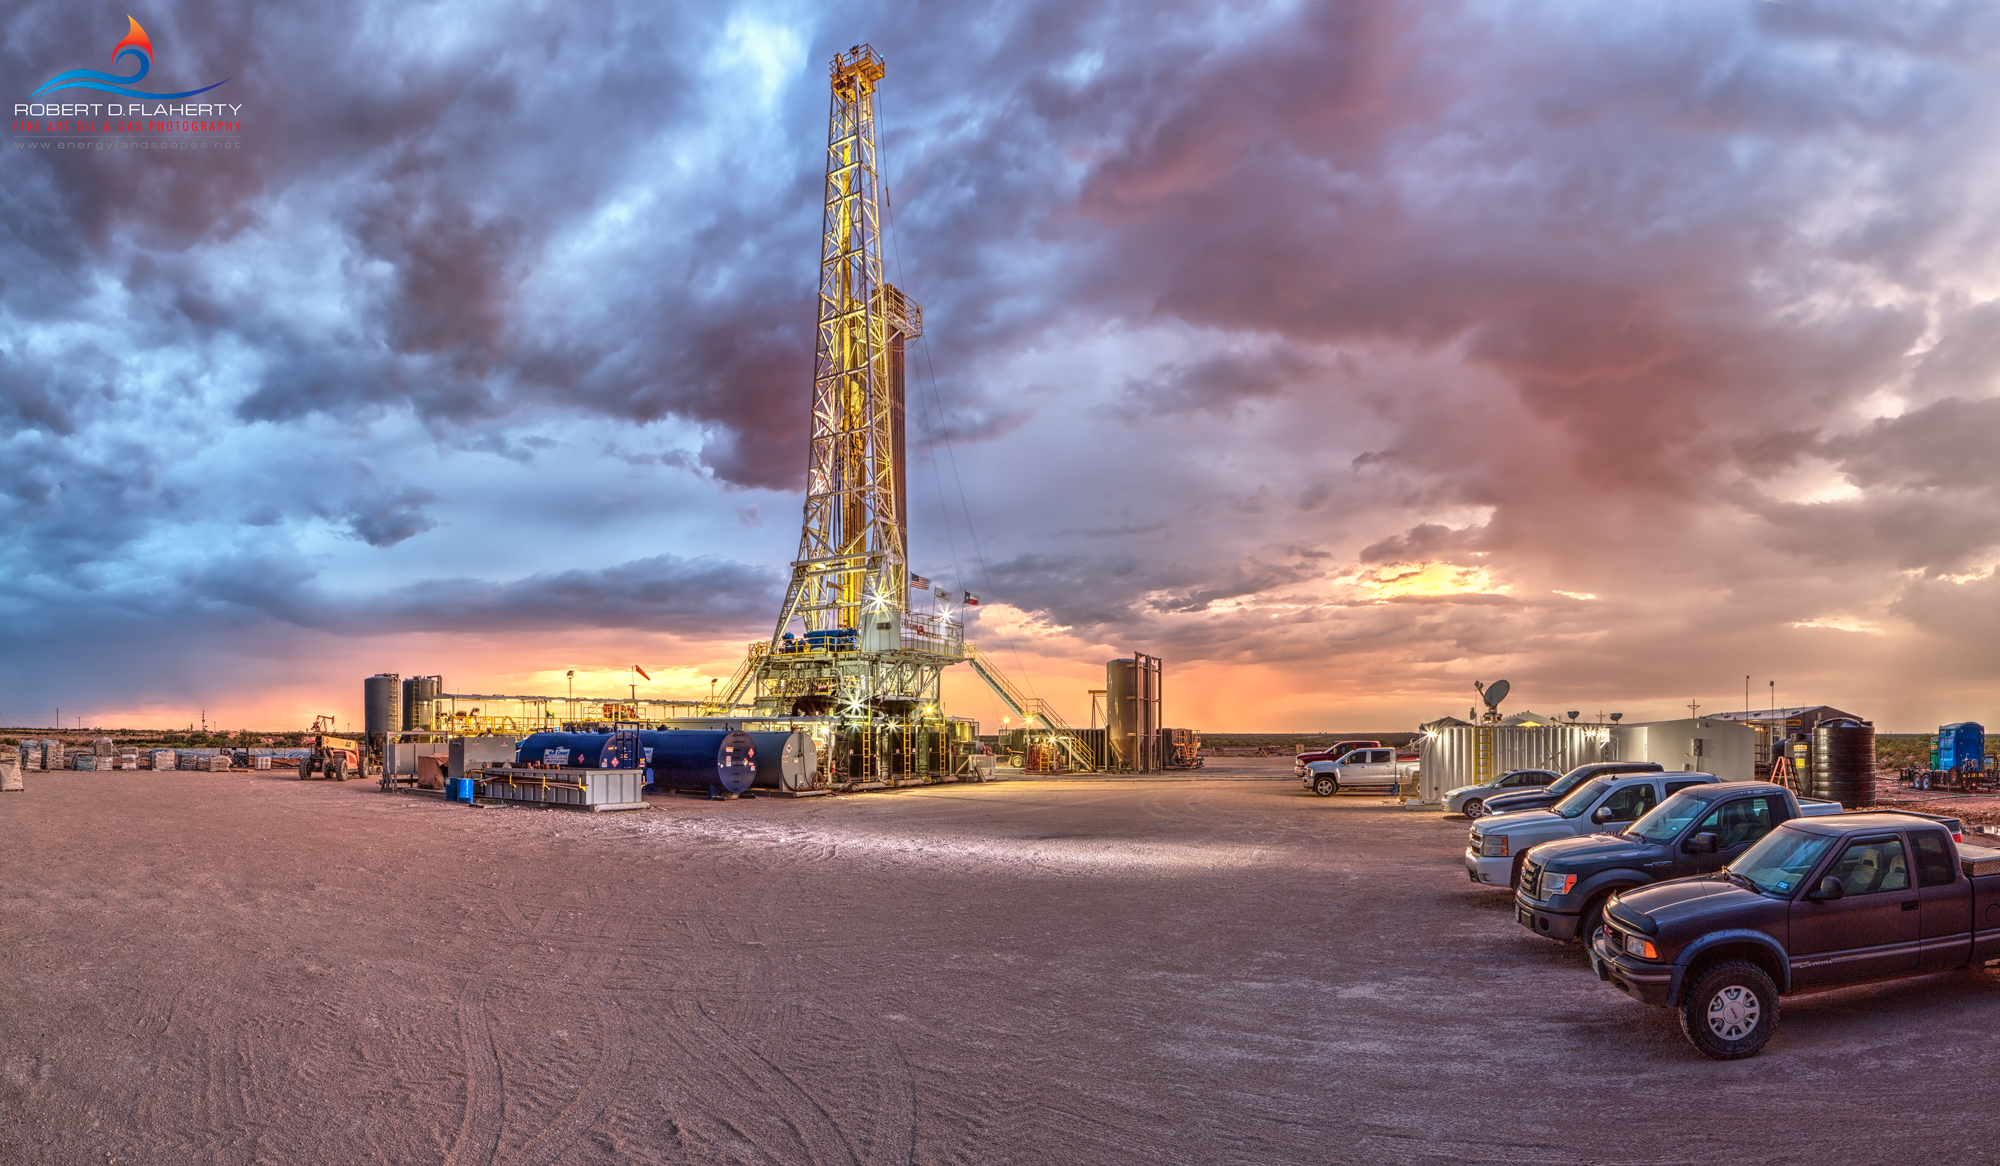 Delaware Basin, West Texas, Barstow Texas, drilling rig, sunset, thunderstorm, Manti Tarka Permian, Scan Drill Inc., Patriot, lateral well, Summer, photo